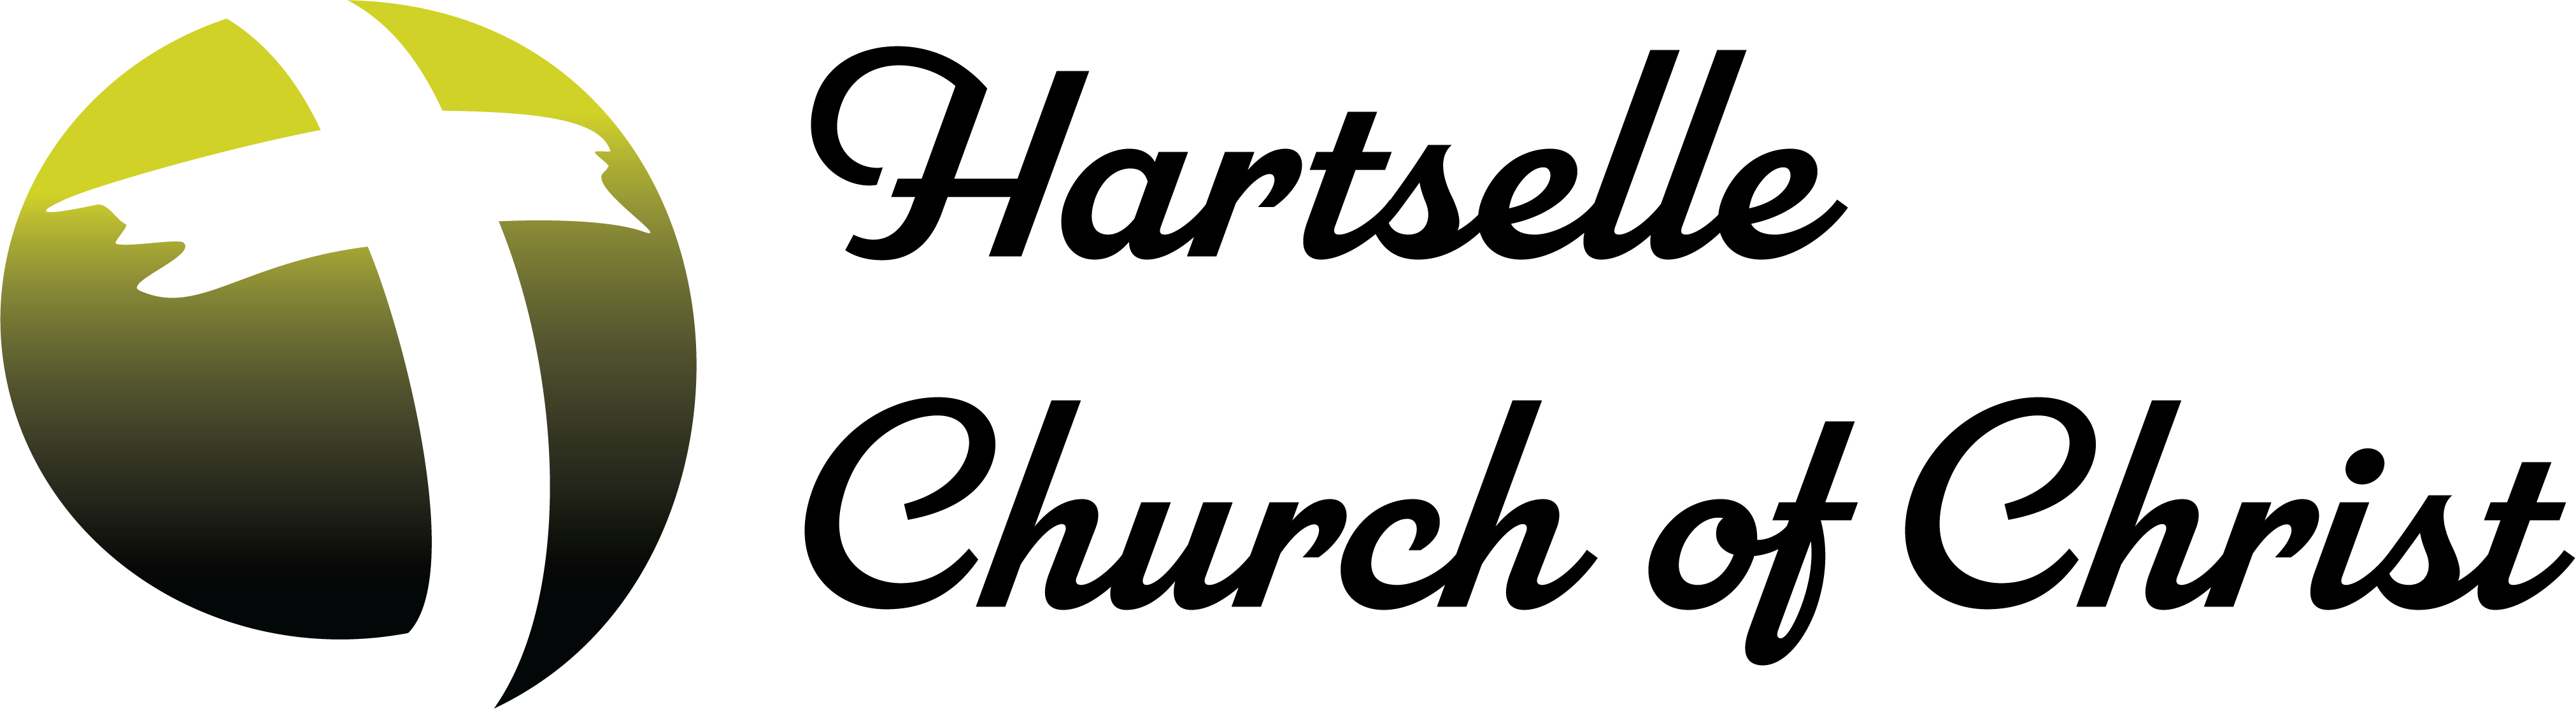 HARTSELLE CHURCH OF CHRIST